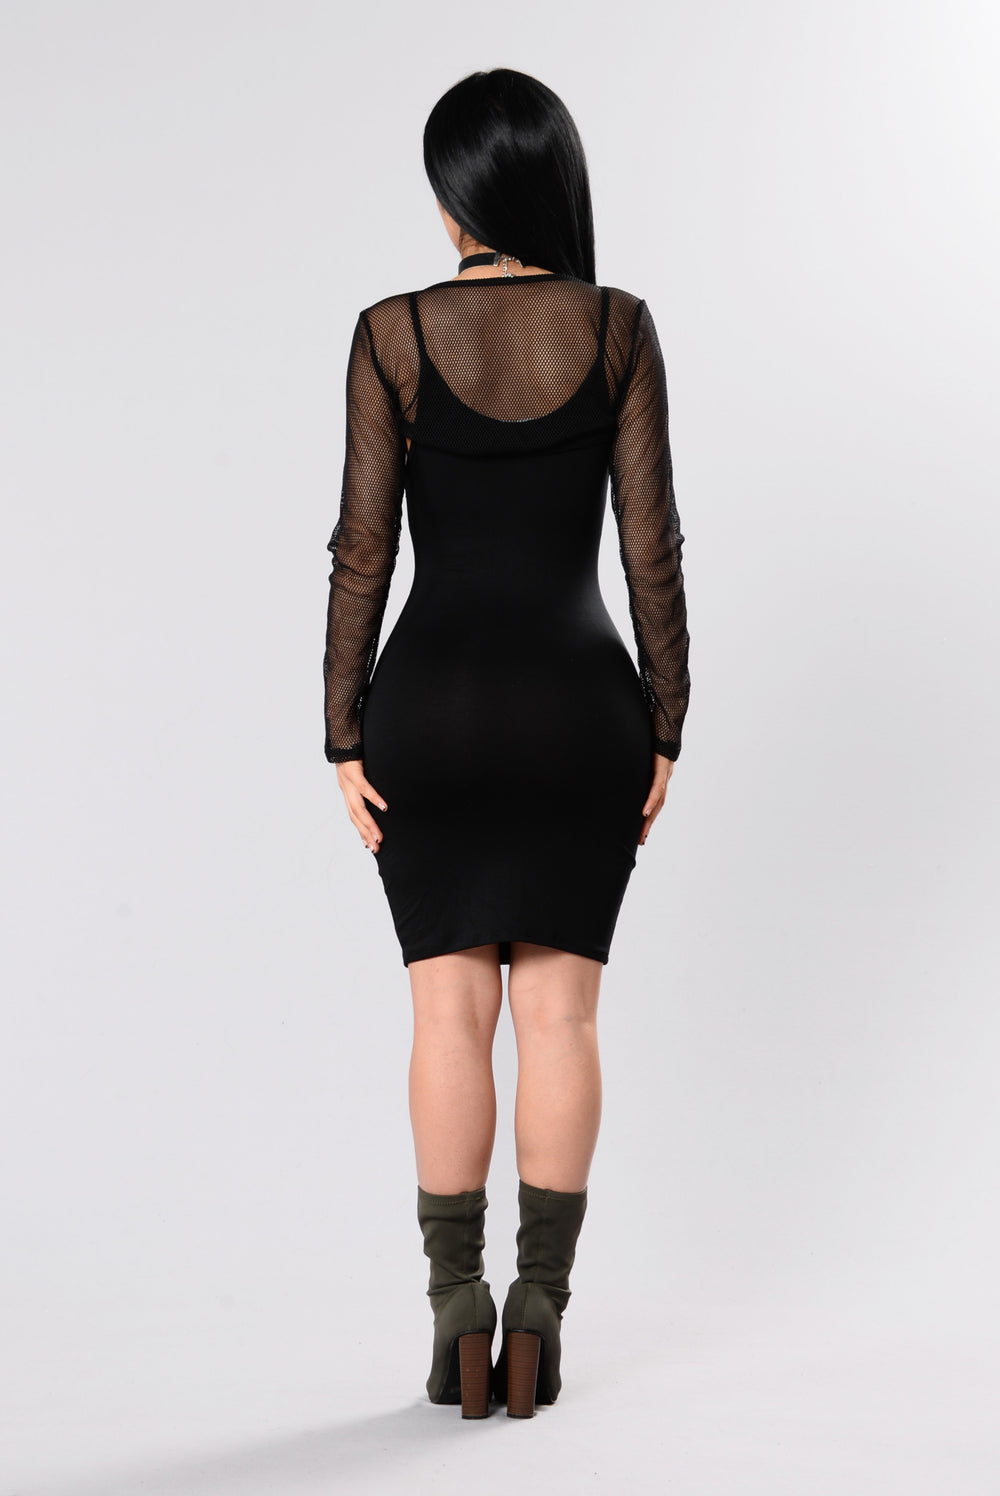 Make You See Dress - Black